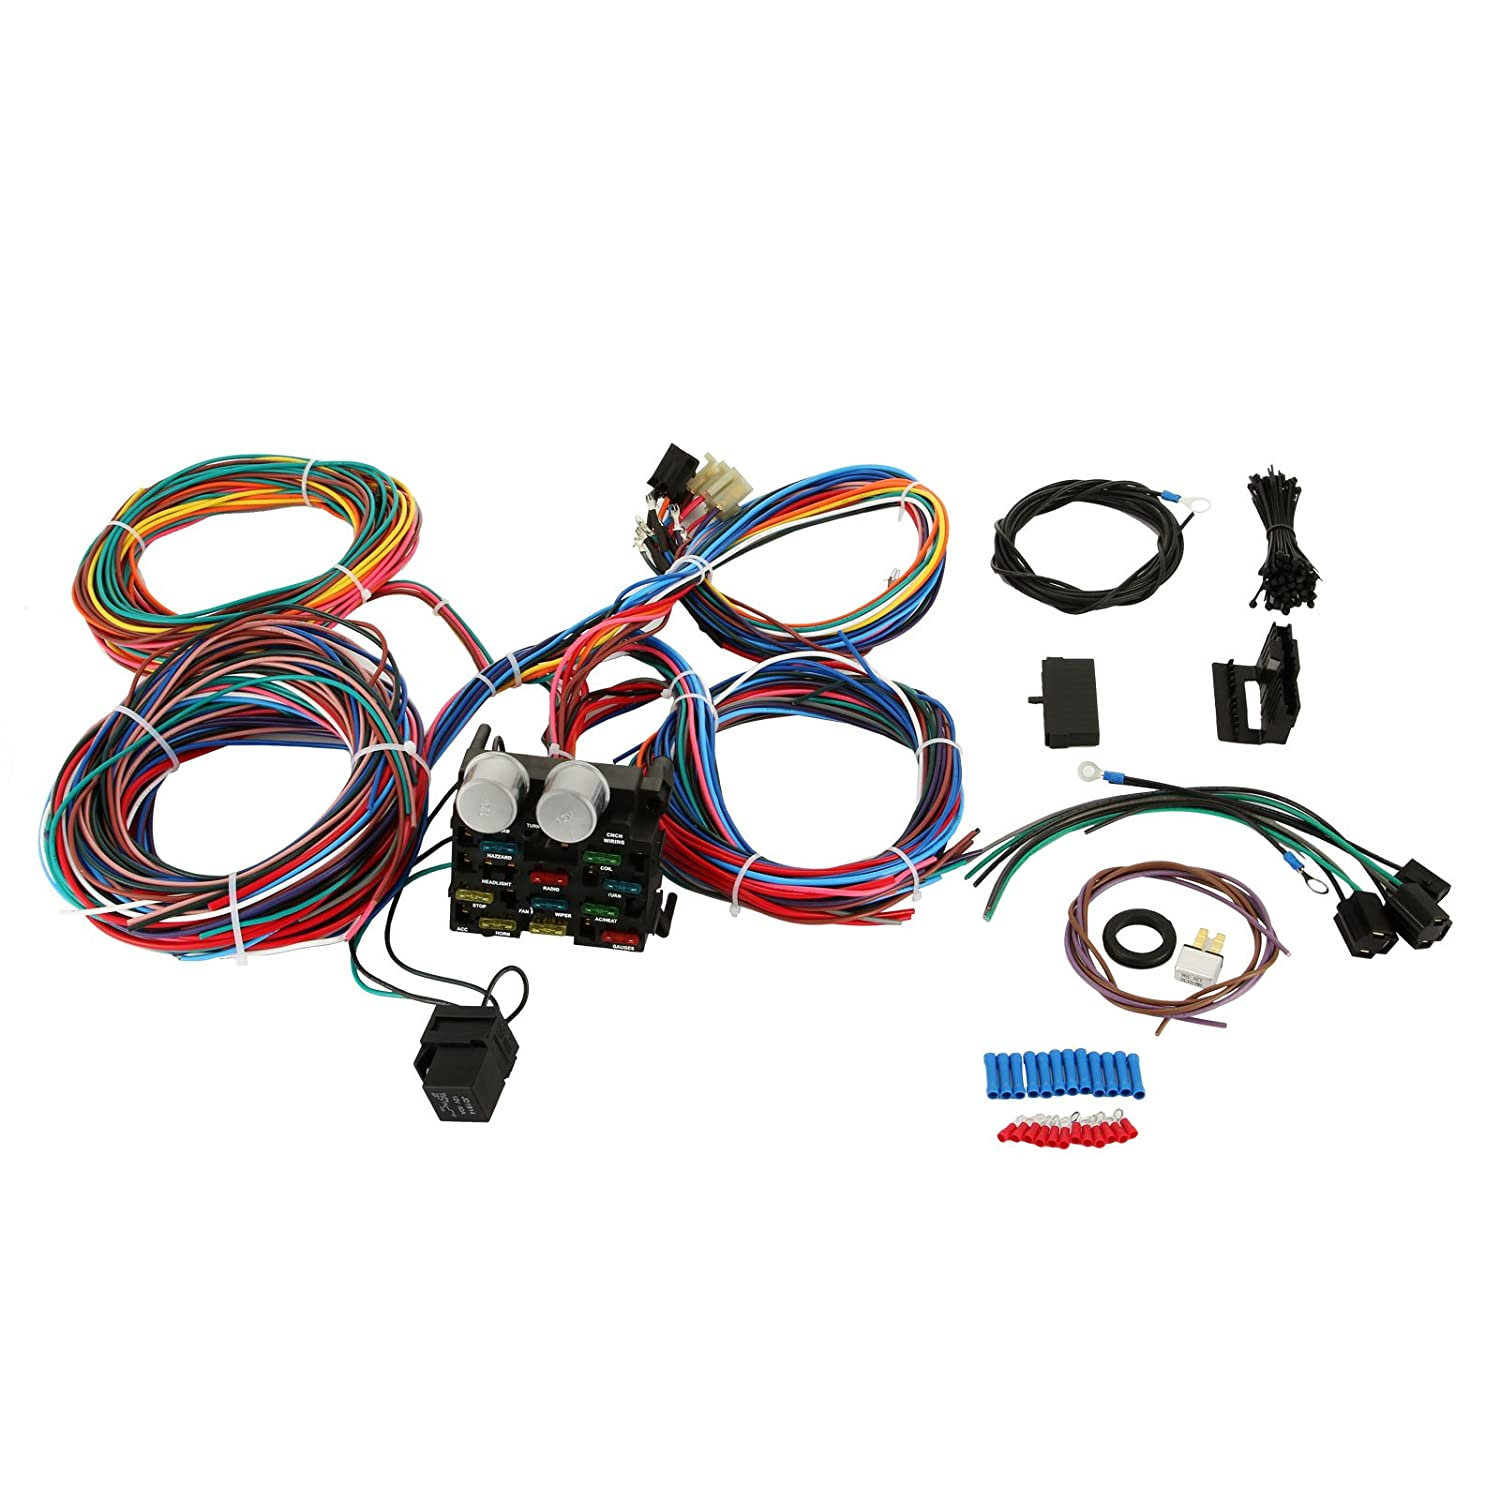 Mophorn Wiring Harness Kit 12 Circuit Hot Rod Universal Ford Kits Male Plugs Muscle Car Street Xl Wires Automotive